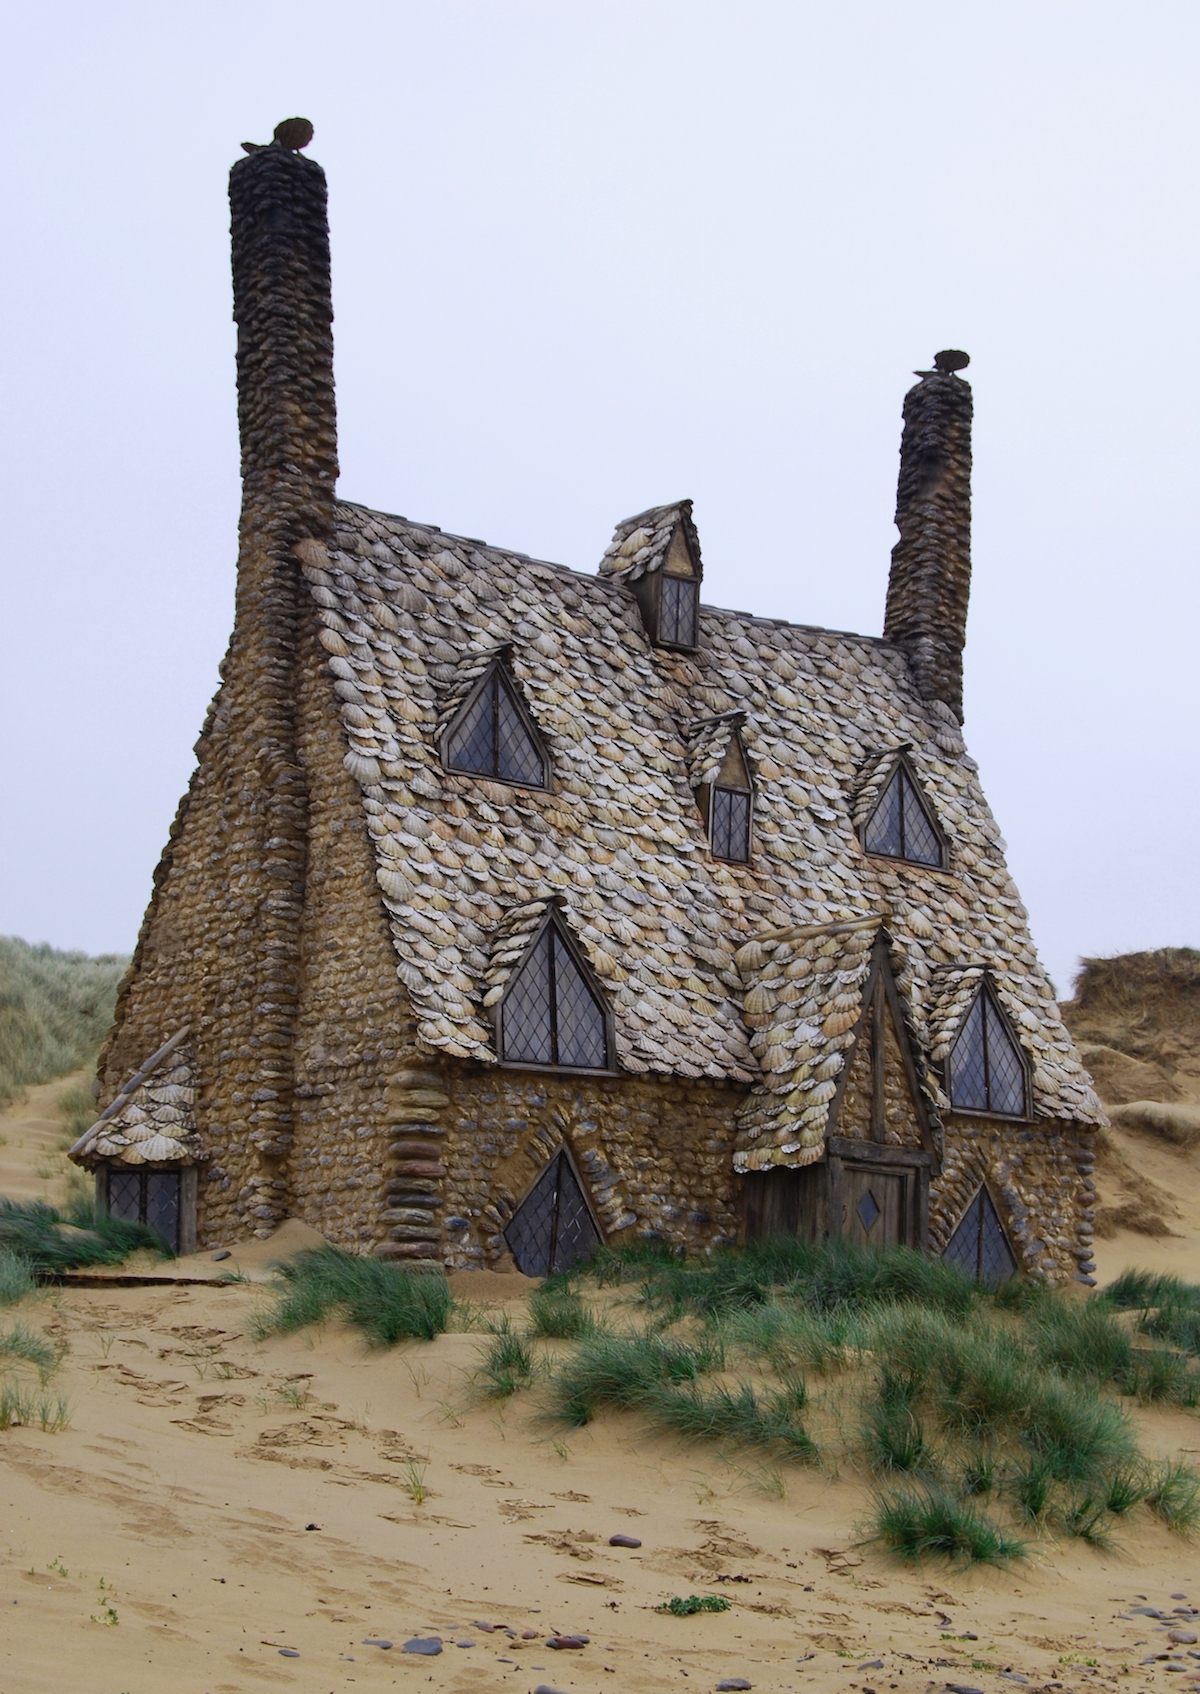 The quirky Harry Potter seashell hut actually existsed!